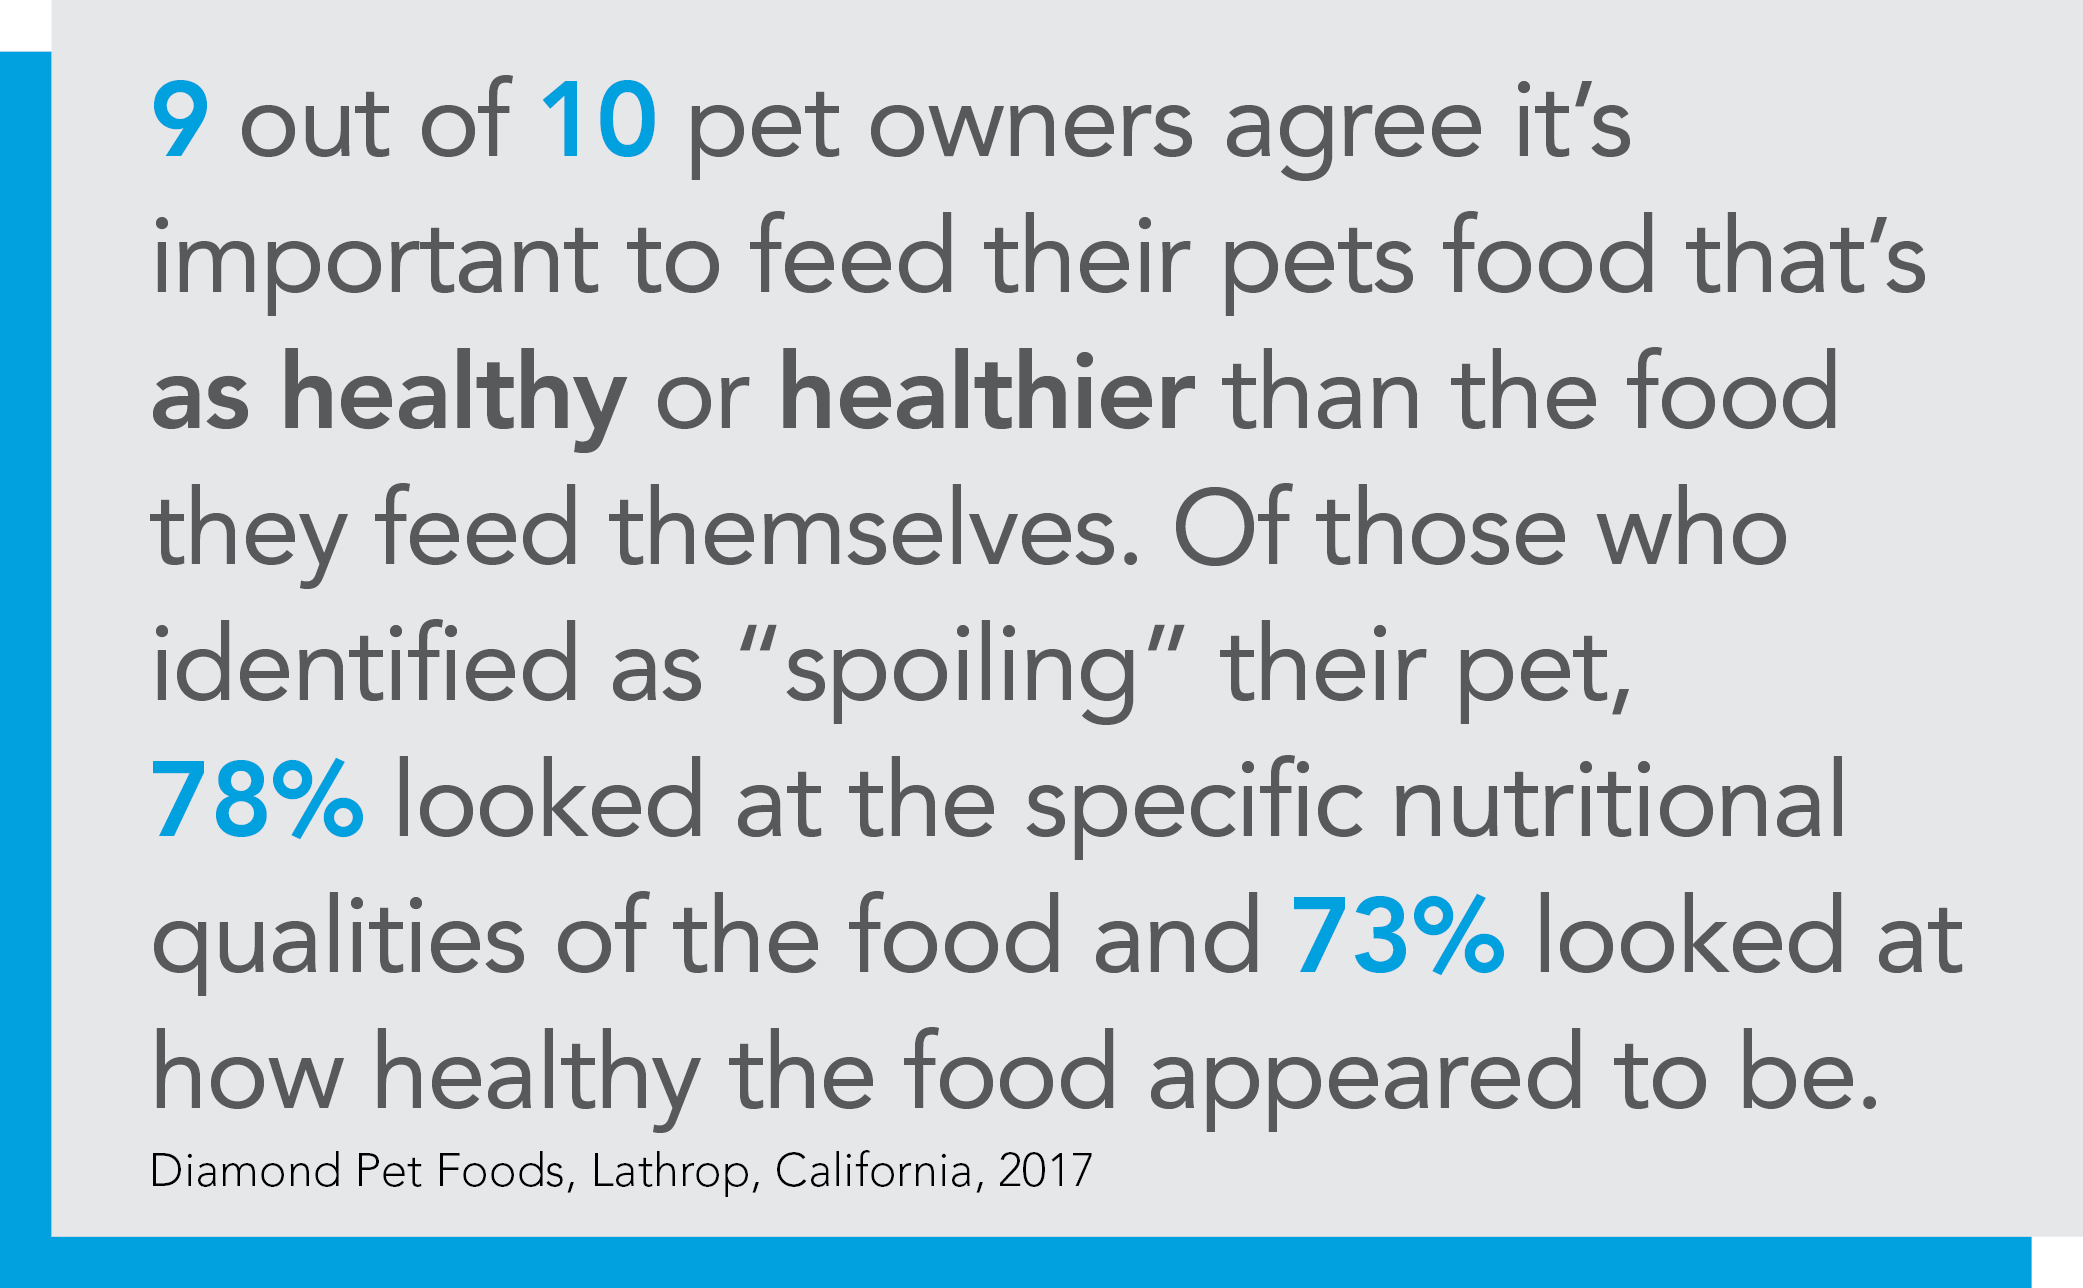 Survey of pet owners about healthy products